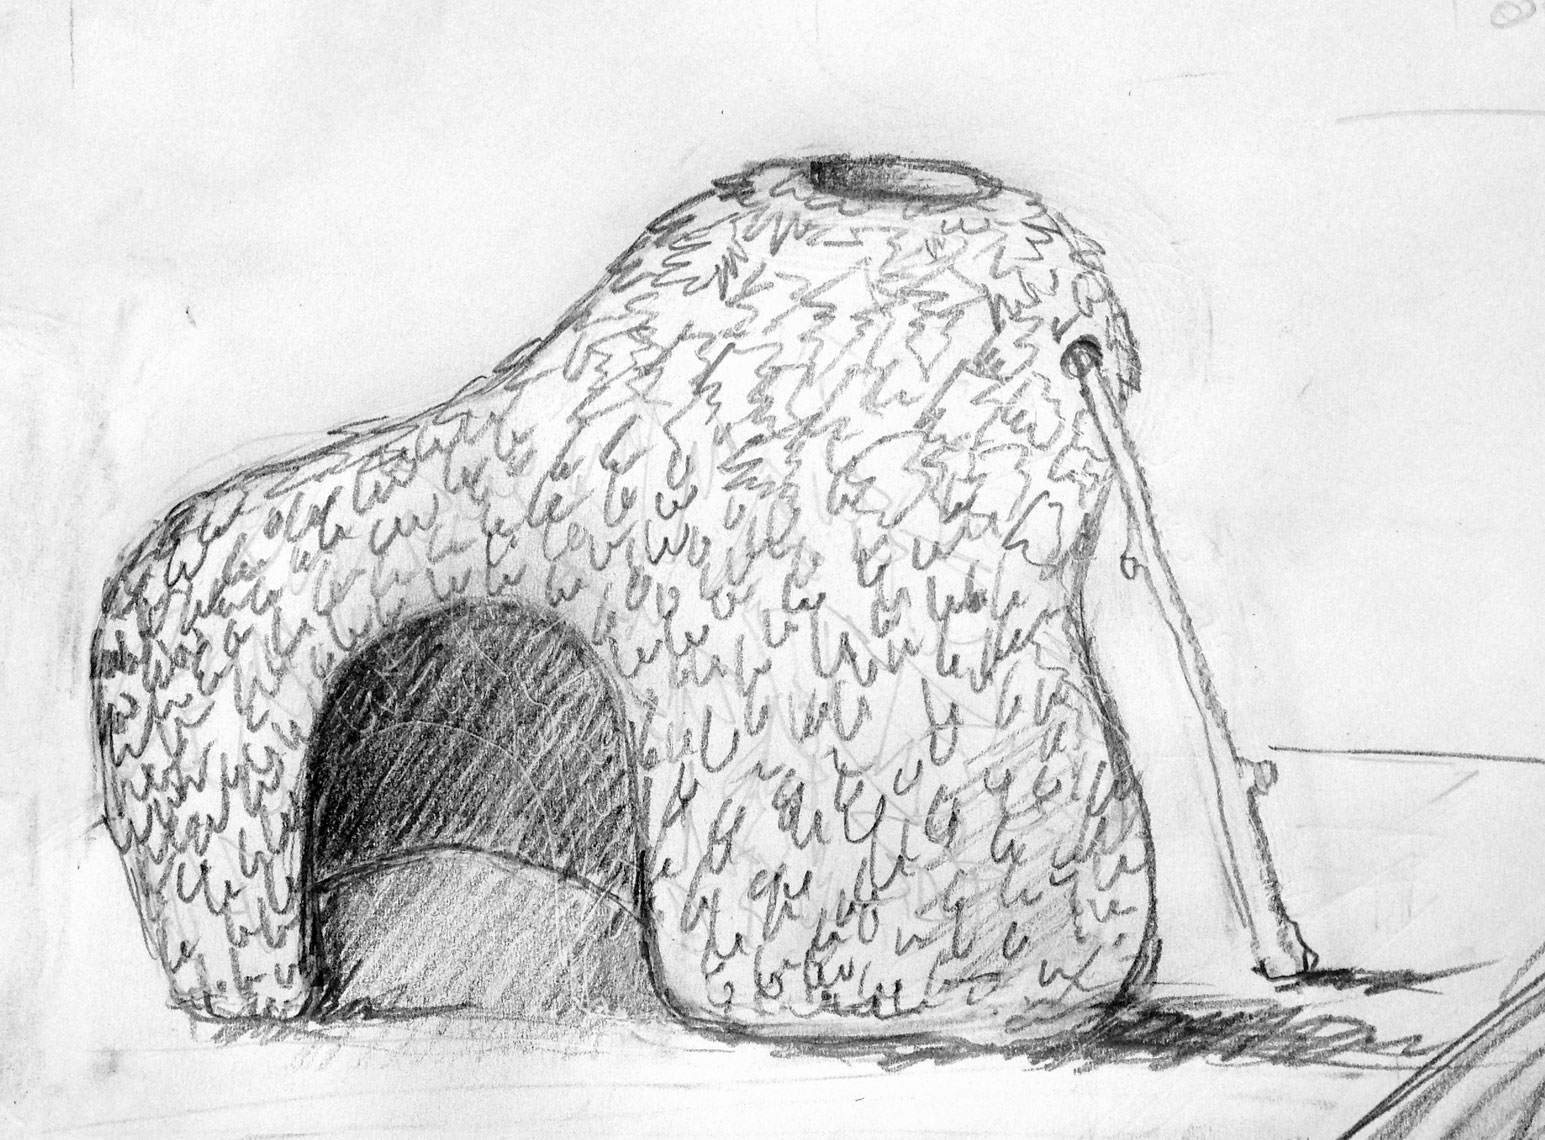 Sculpture_Shelter-_Drawing_©pascaldemeester#1